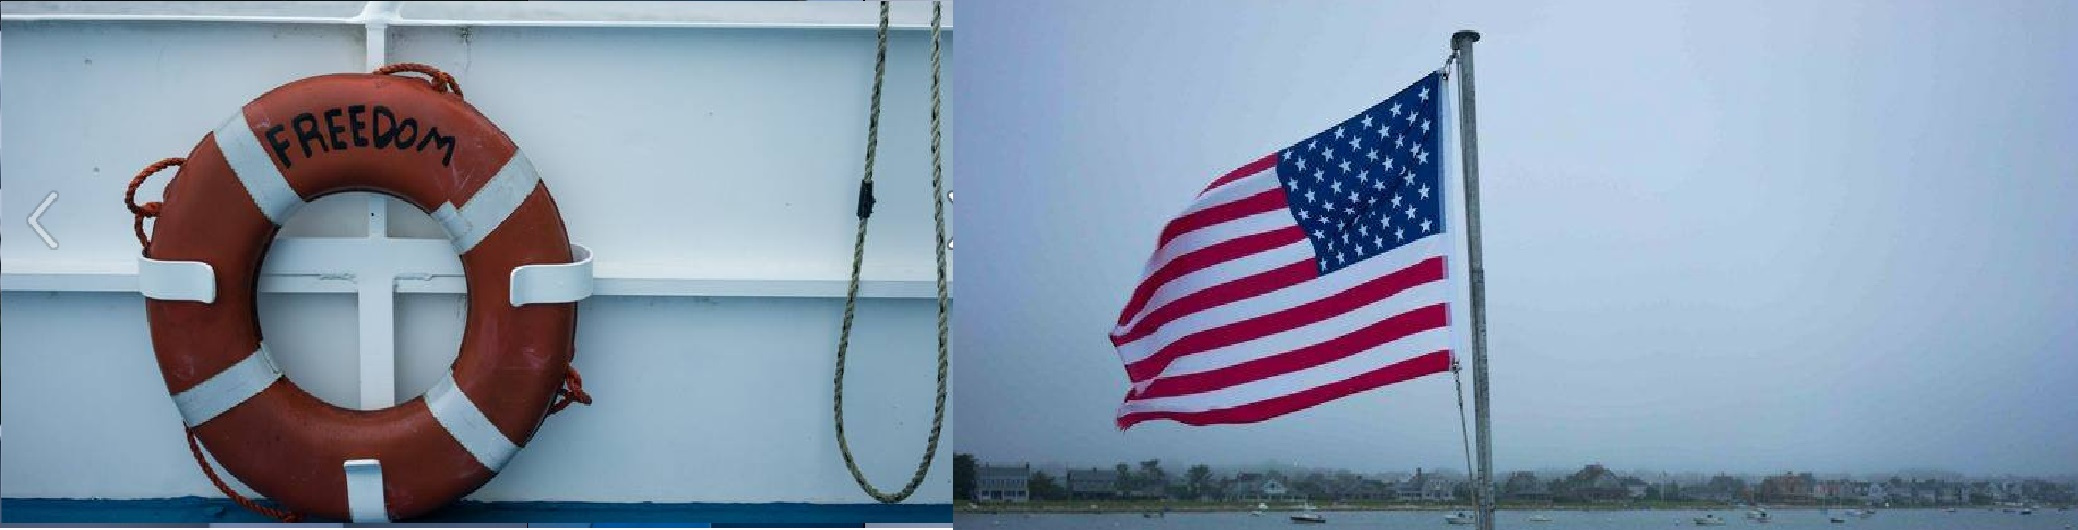 Life ring on Freedom Ferry, American flag with Harwichport shoreline in background